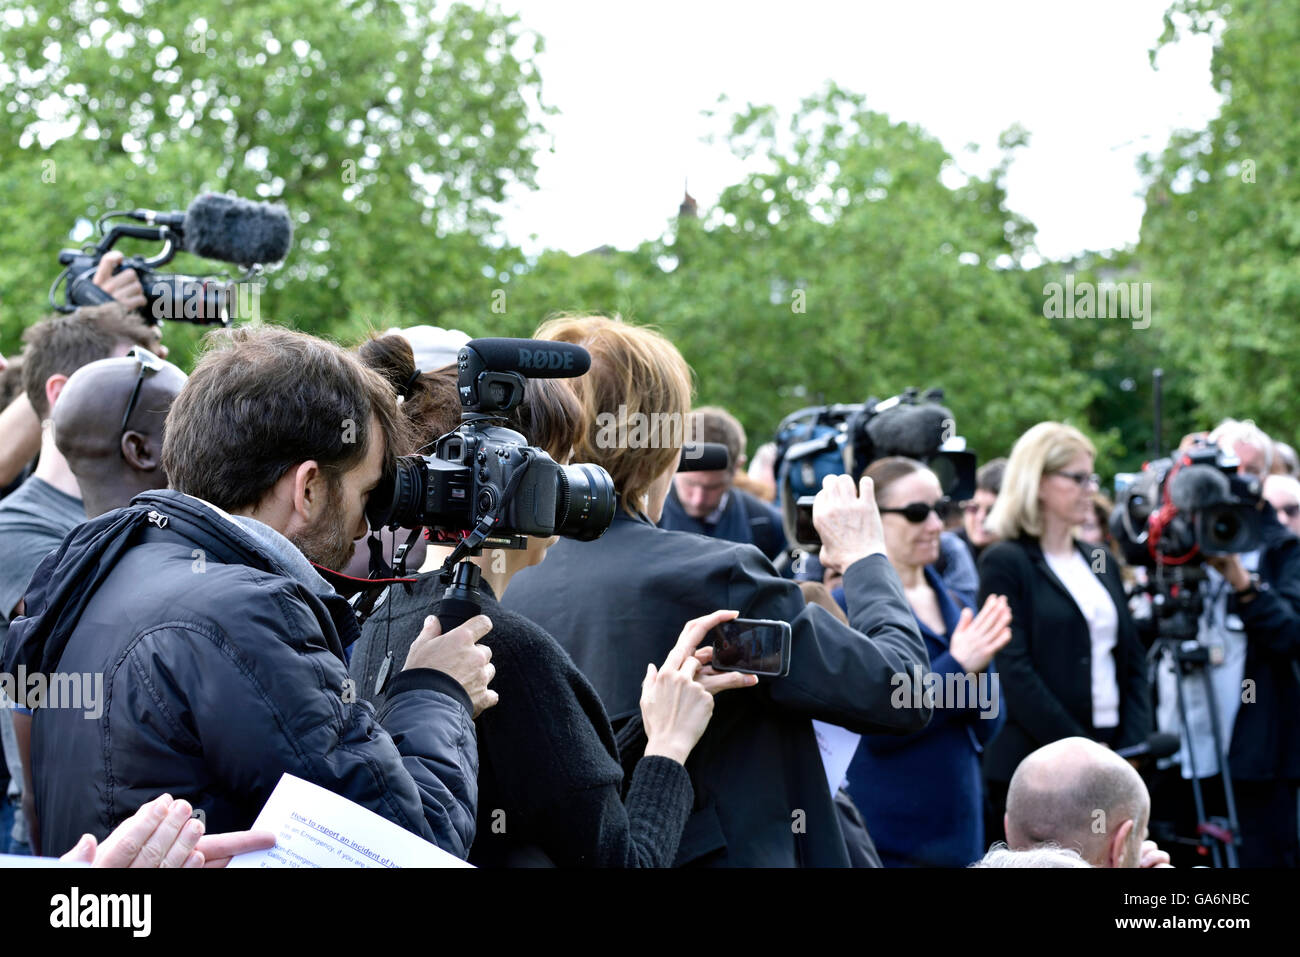 Photographers at the - say no to hate crime rally - in Highbury Fields, London Borough of Islington England Britain - Stock Image